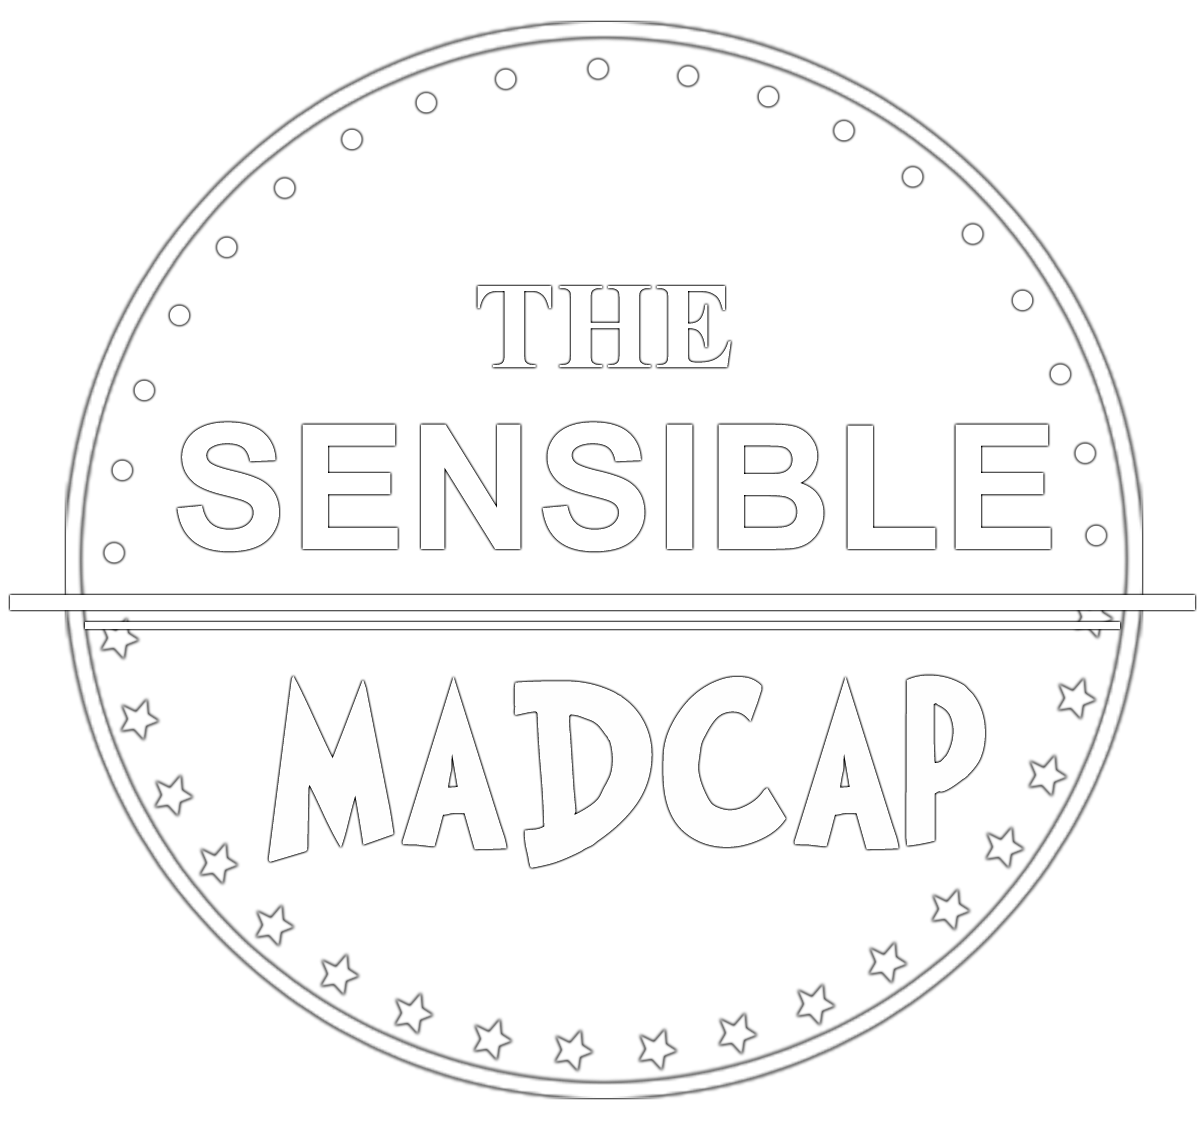 The Sensible Madcap